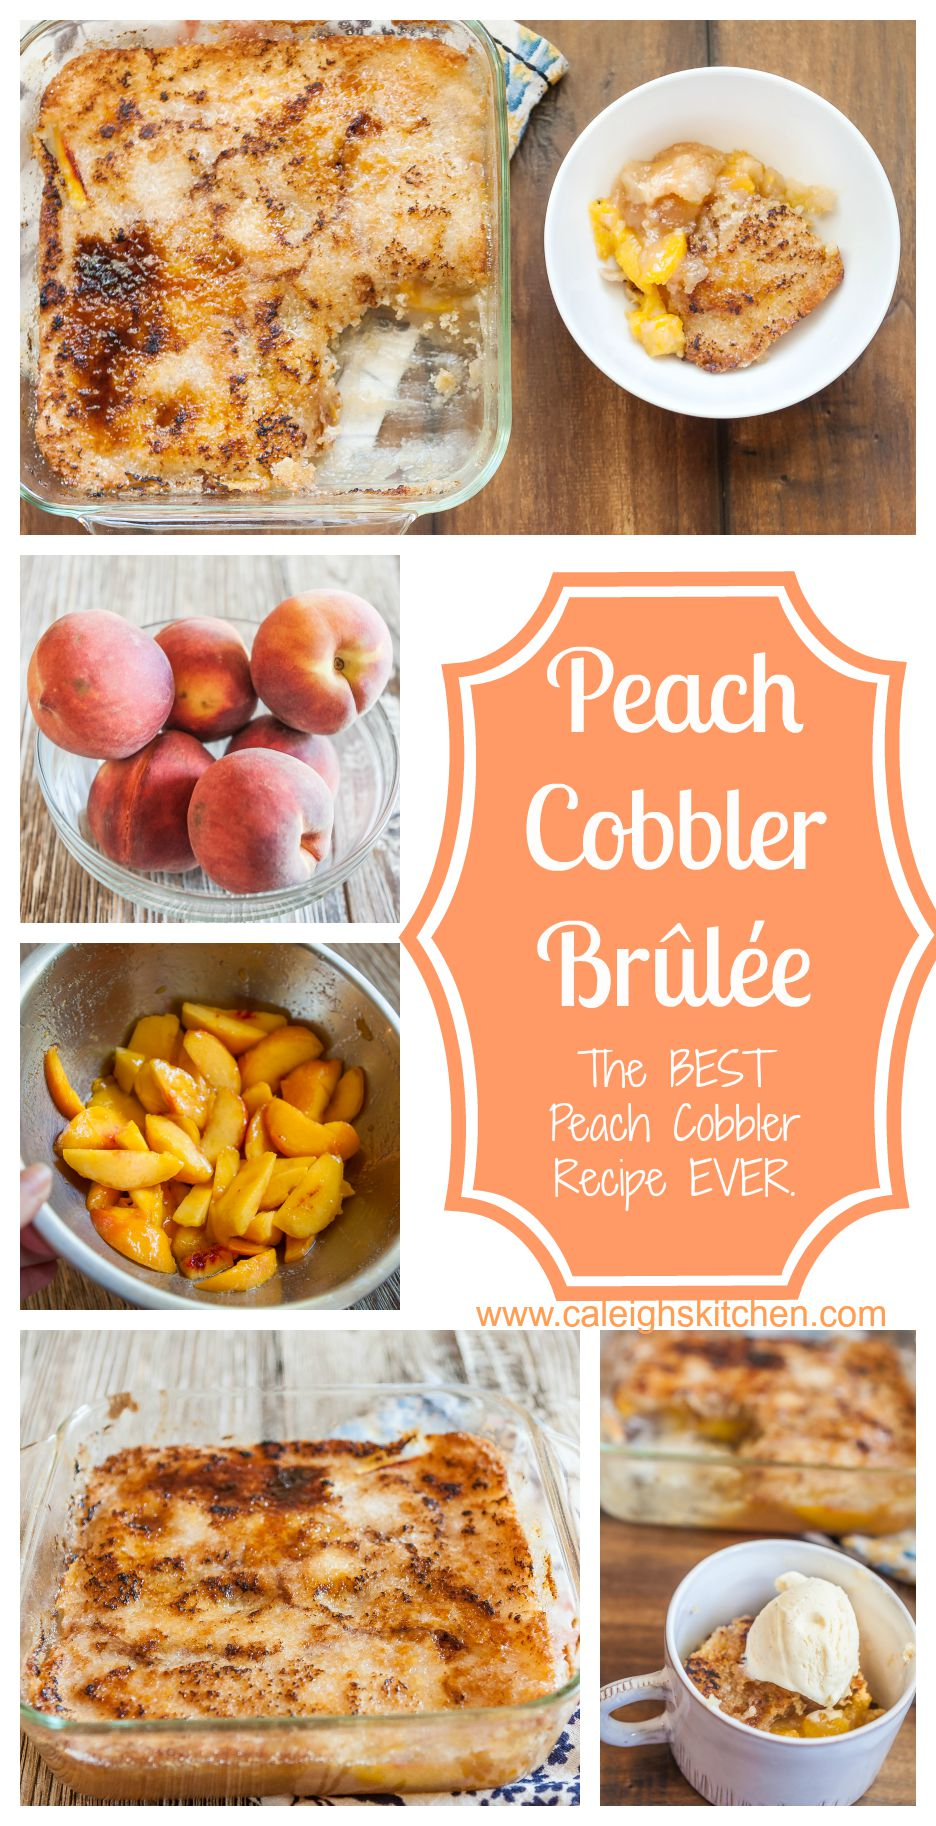 Peach Cobbler Brulee Recipe | Caleigh's Kitchen